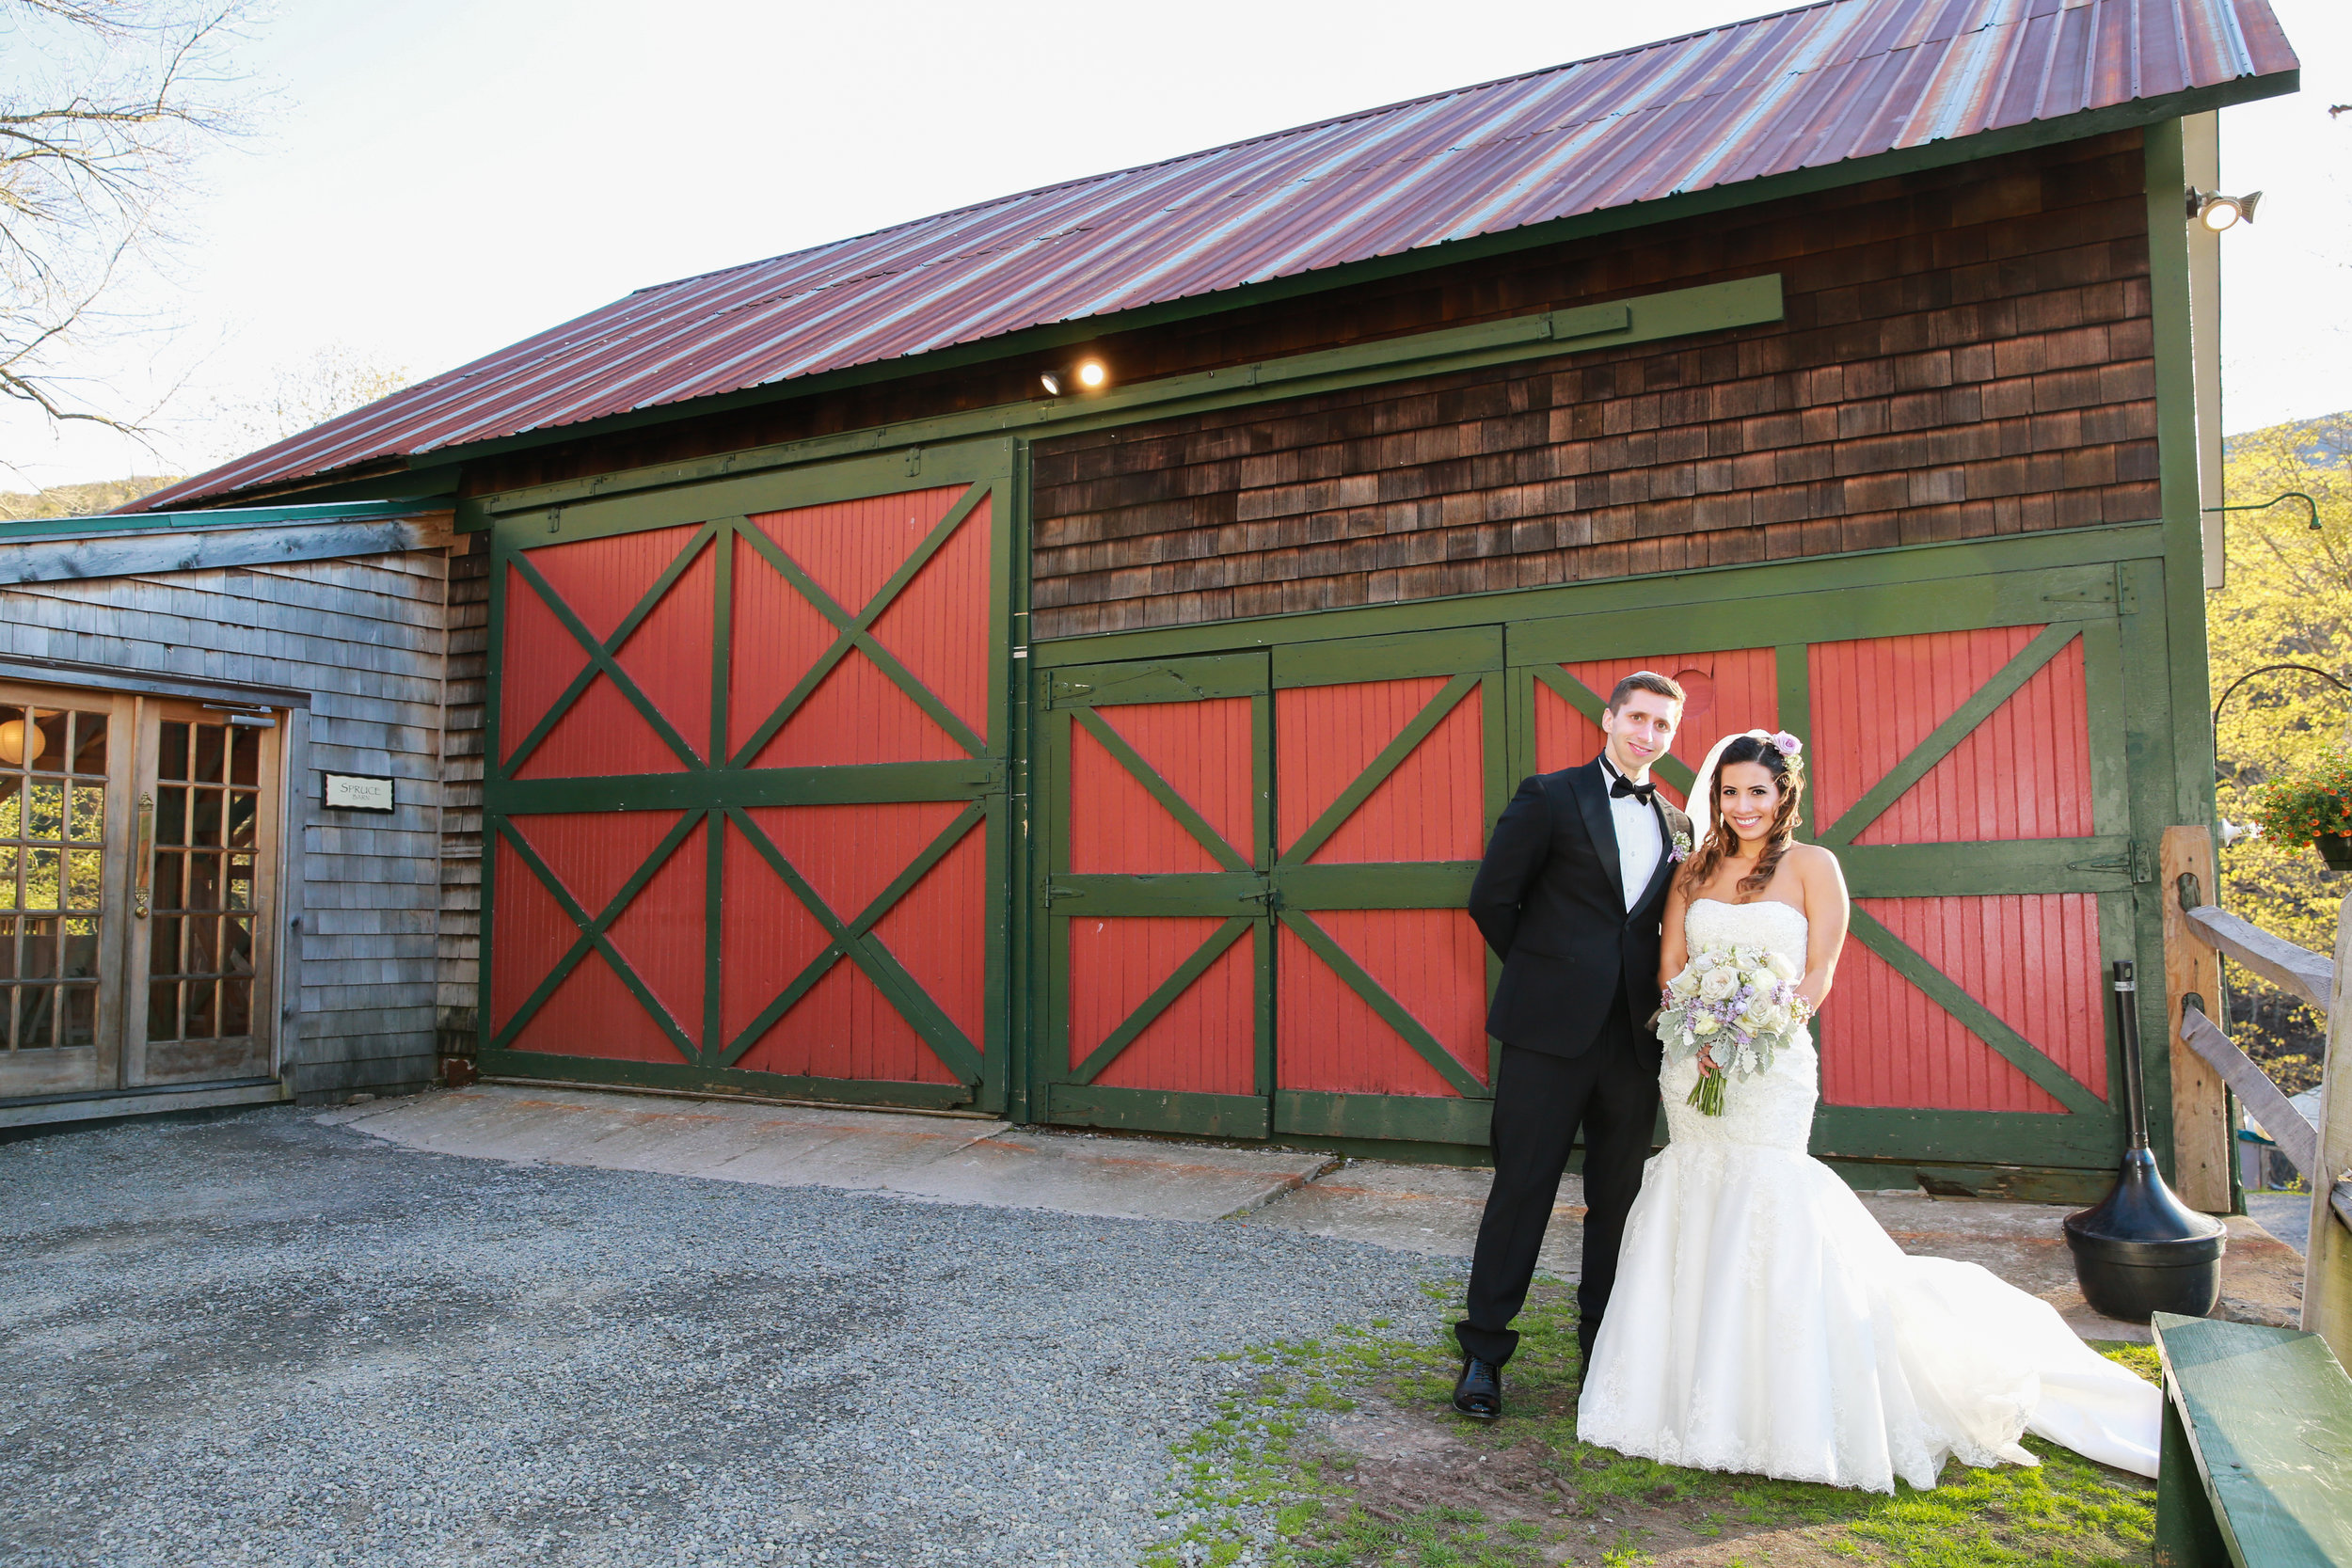 Barn Wedding Photography in the Catskills by Aperture Photography